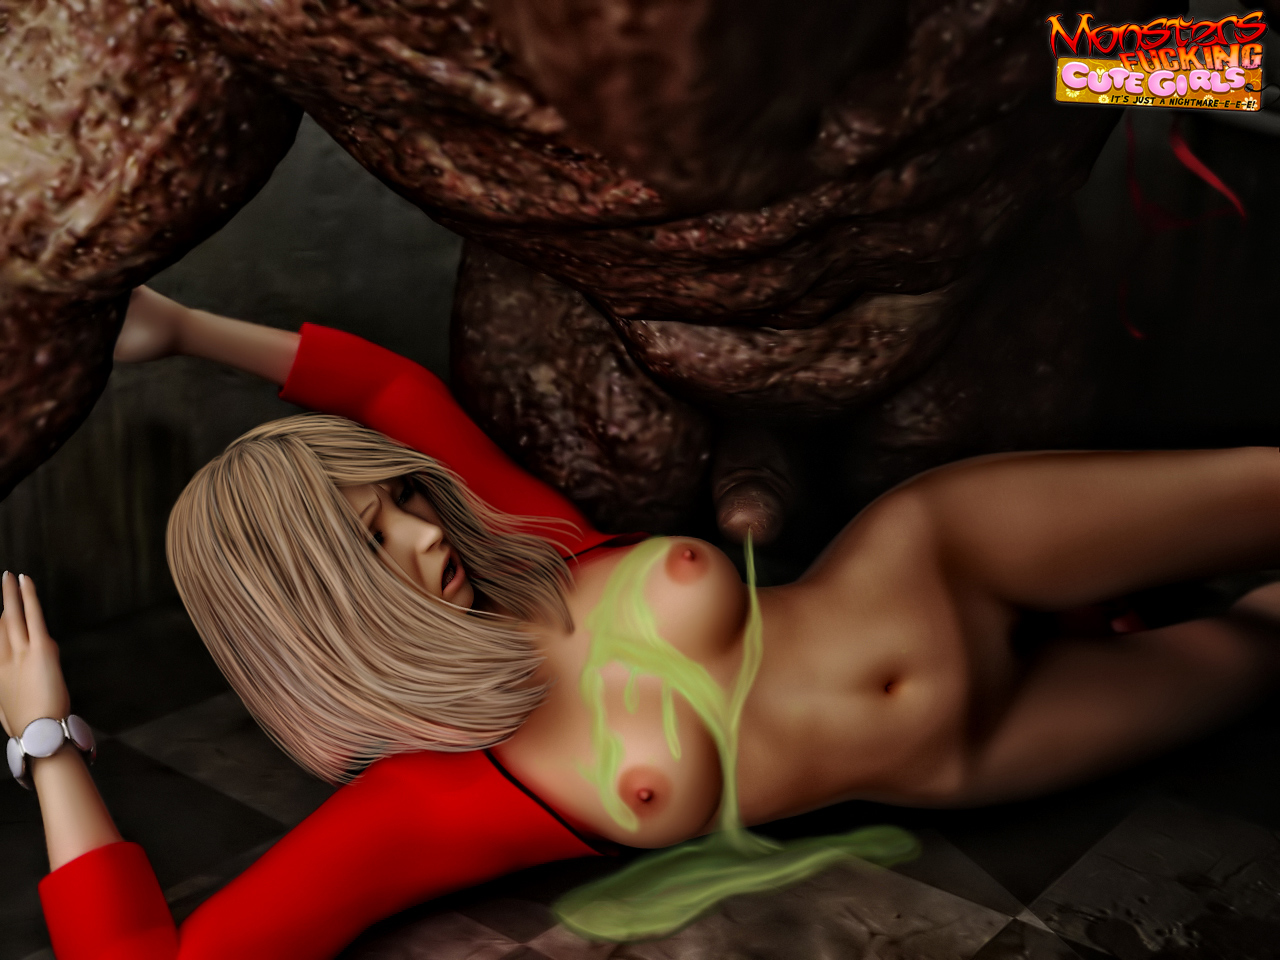 Monster fuck hentai girl video download adult beauty girl